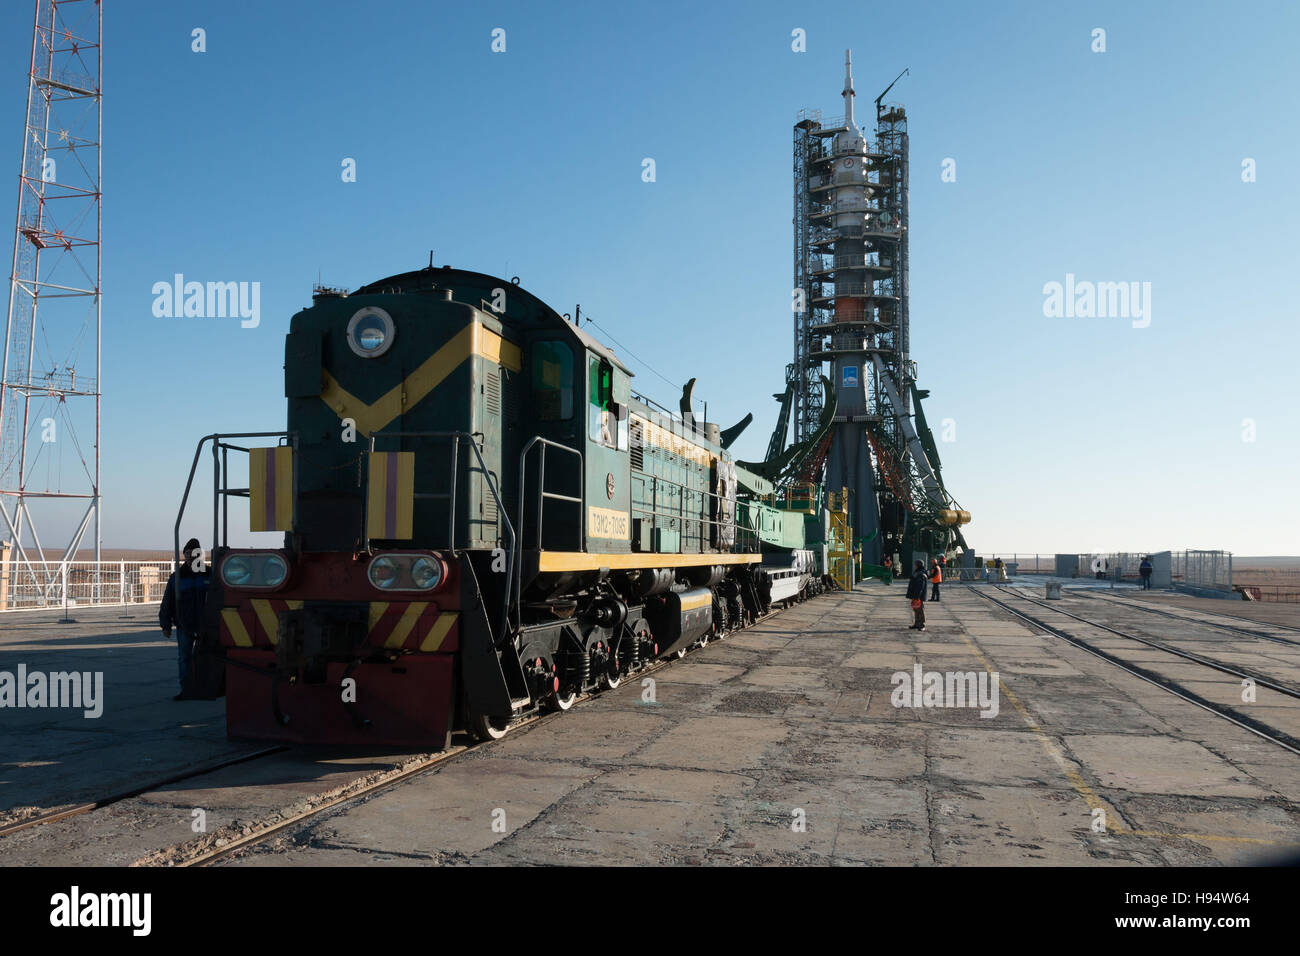 The Russian Soyuz rocket and Soyuz MS-03 spacecraft sits on the Baikonur Cosmodrome launch pad in preparation for - Stock Image